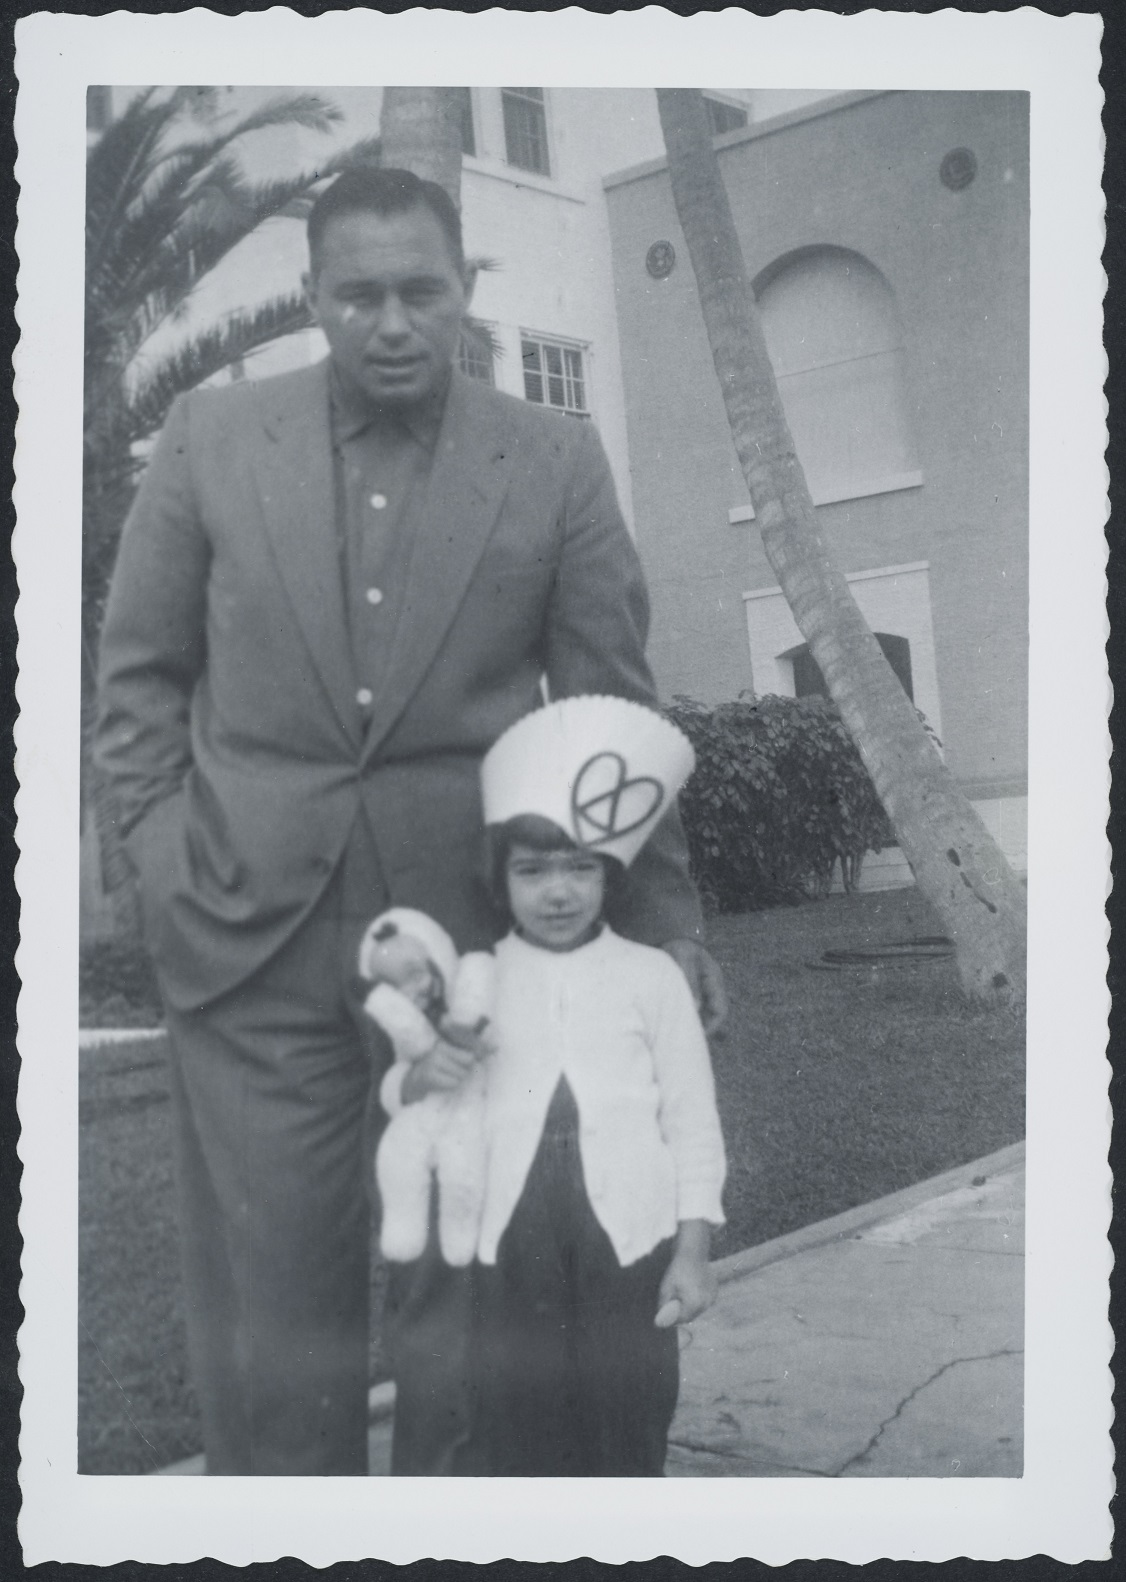 man and young girl standing outside